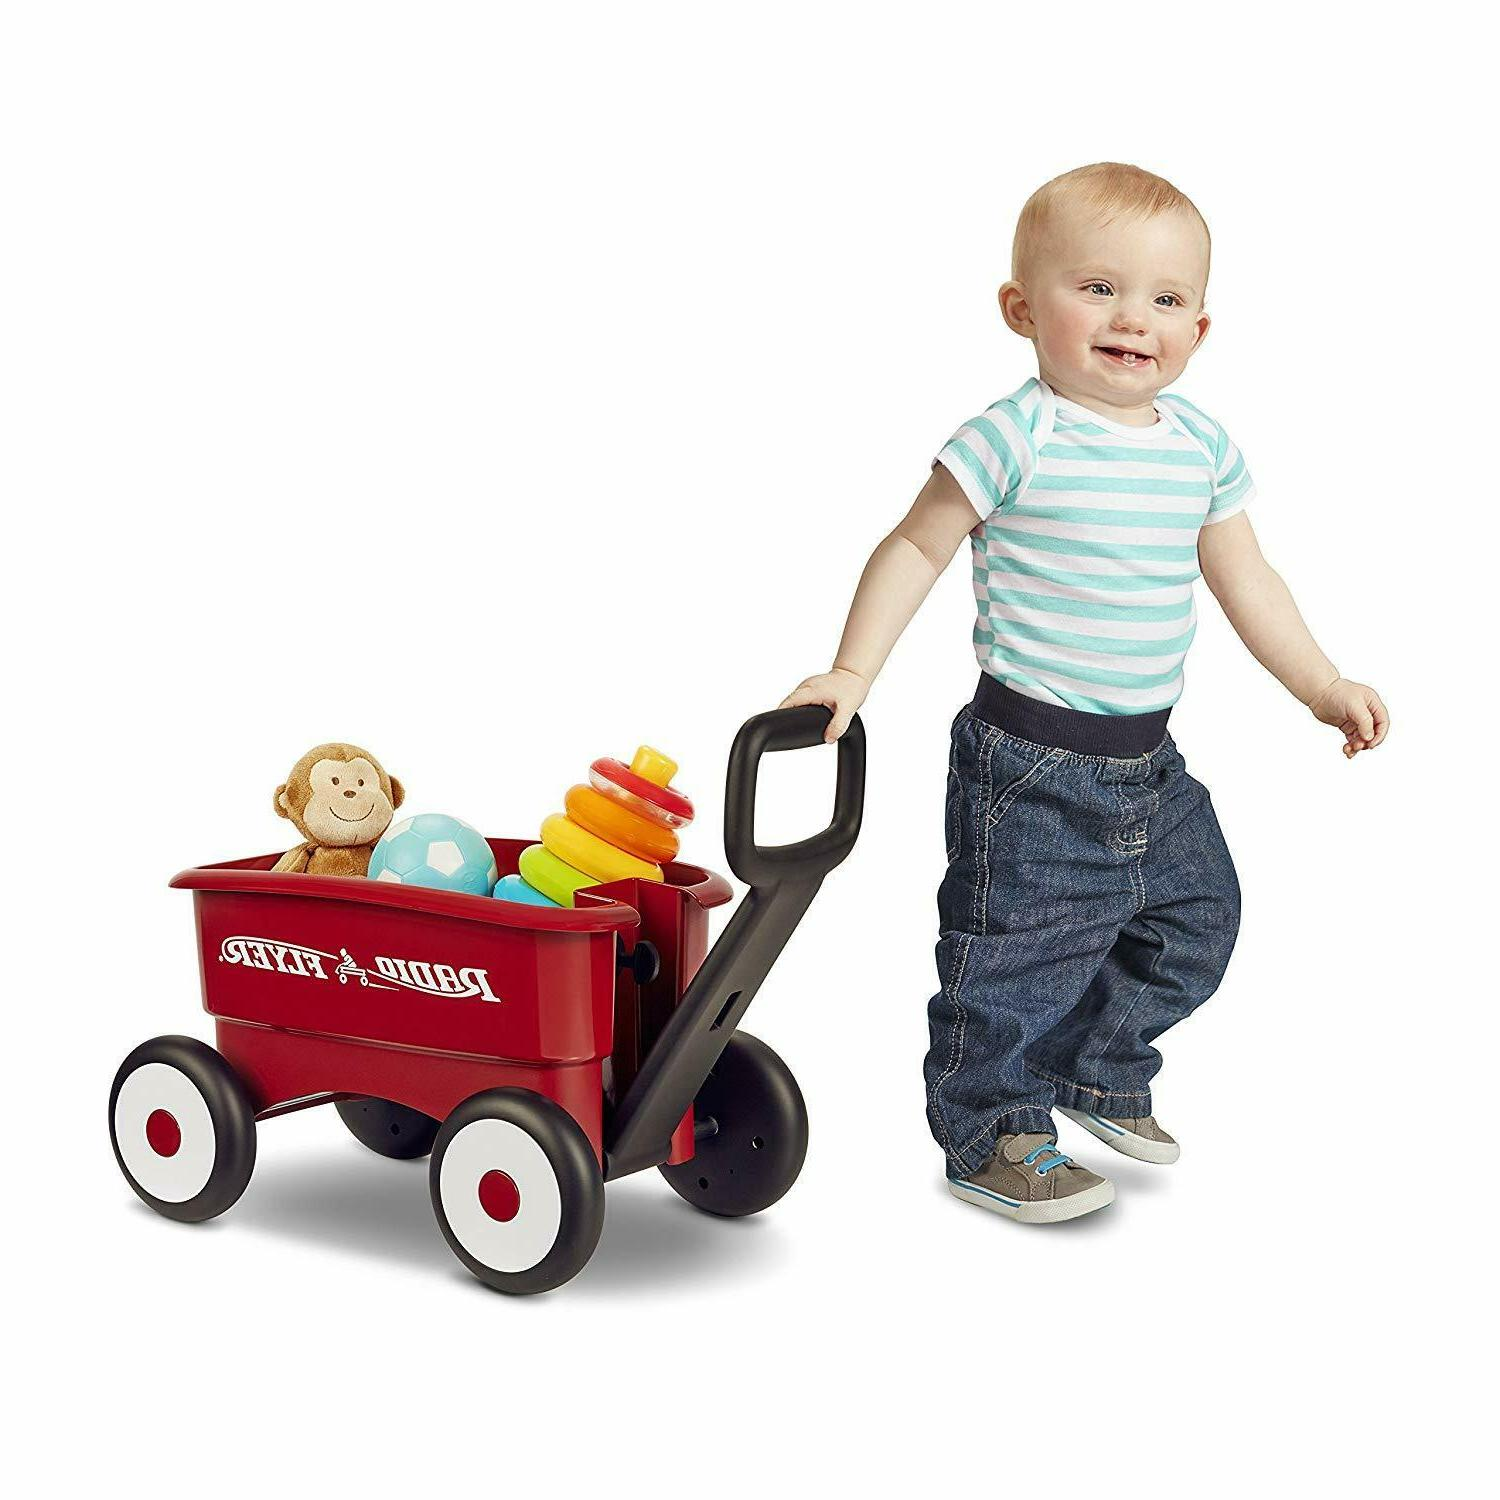 Radio My 2-in-1 Wagon, Red